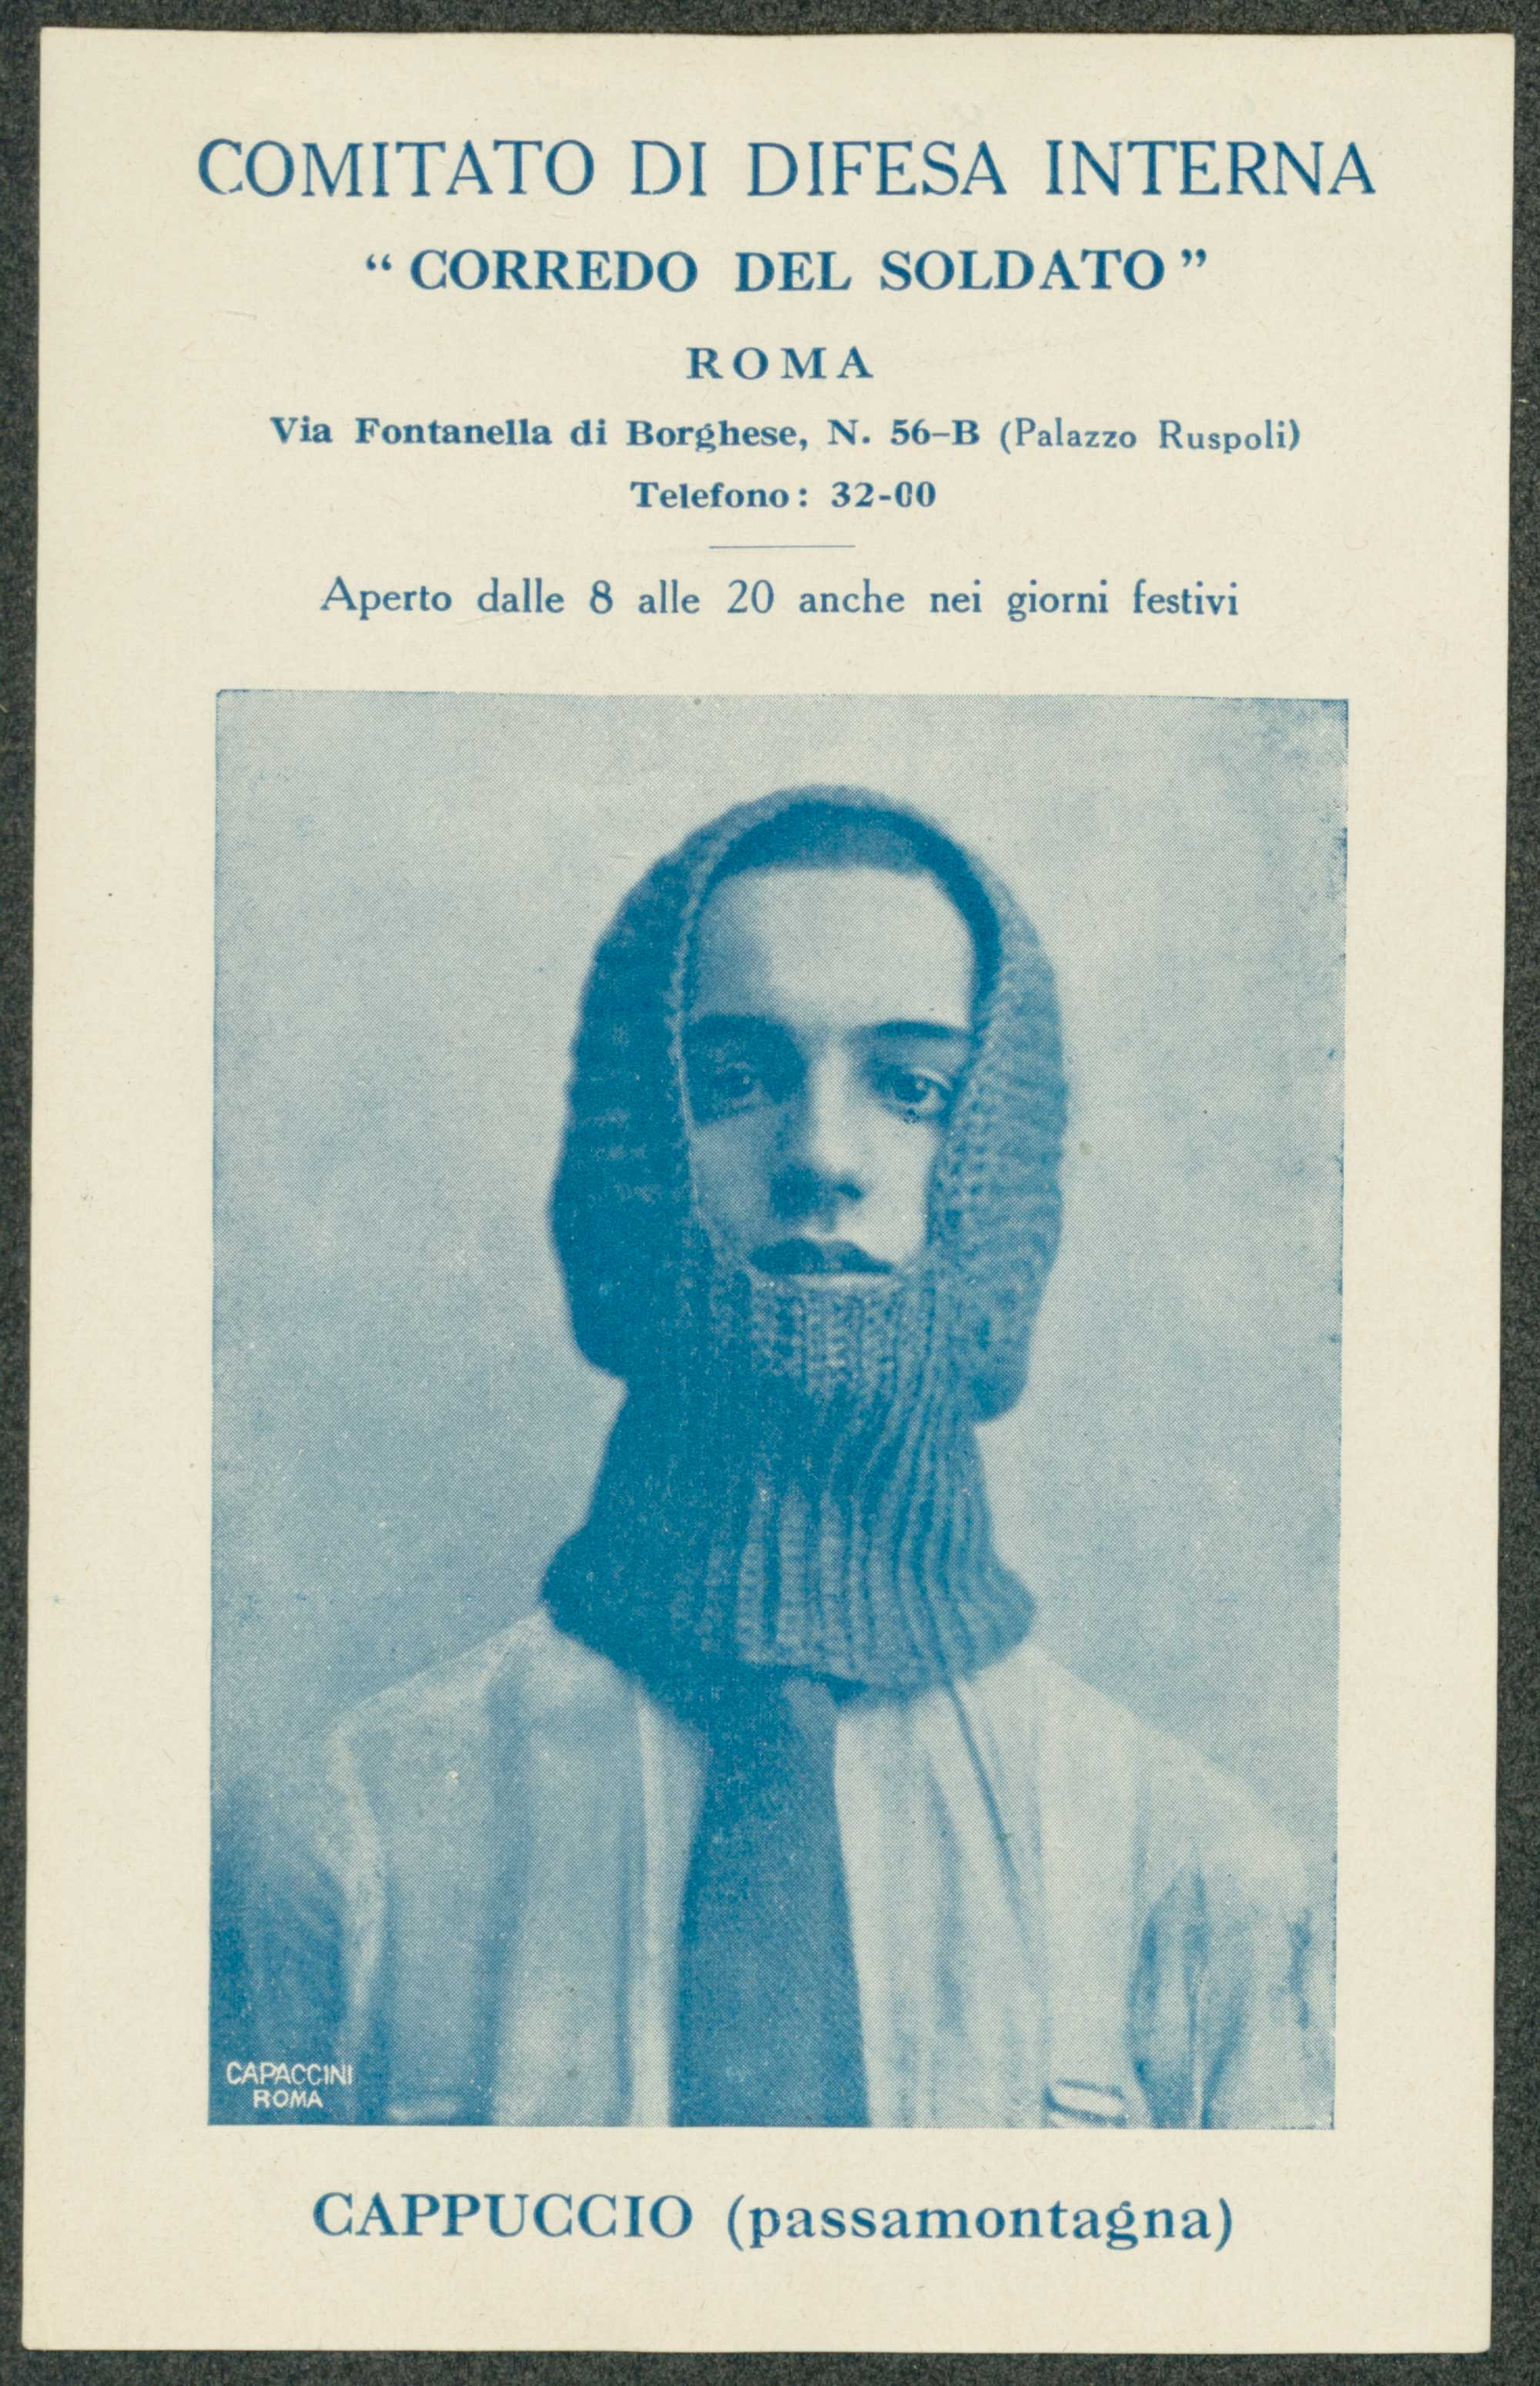 'Corredo del soldato' means soldier's kit, a set of belongings that every soldier needed to take with him when he joined the army. A balaclava (hood) would have helped an Italian soldier stay warm while travelling across and fighting in the mountains.